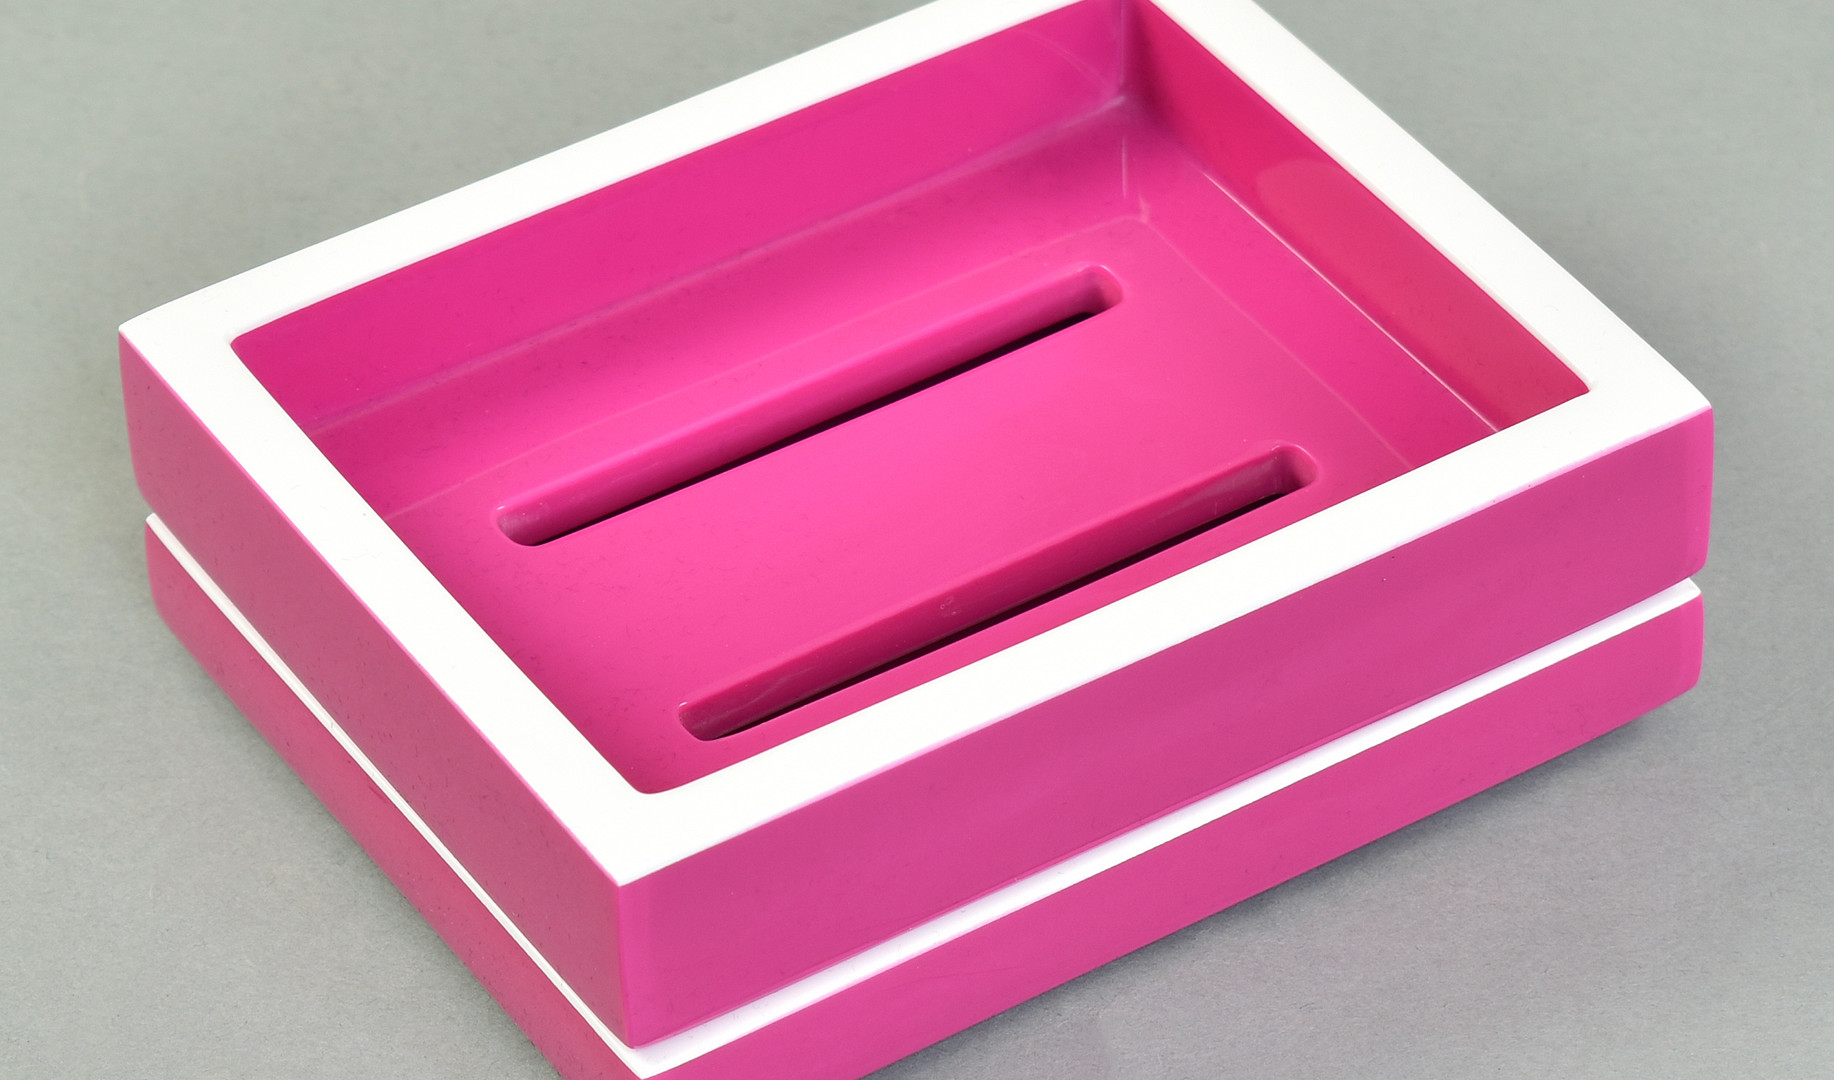 Hot Pink with White- Soap Dish